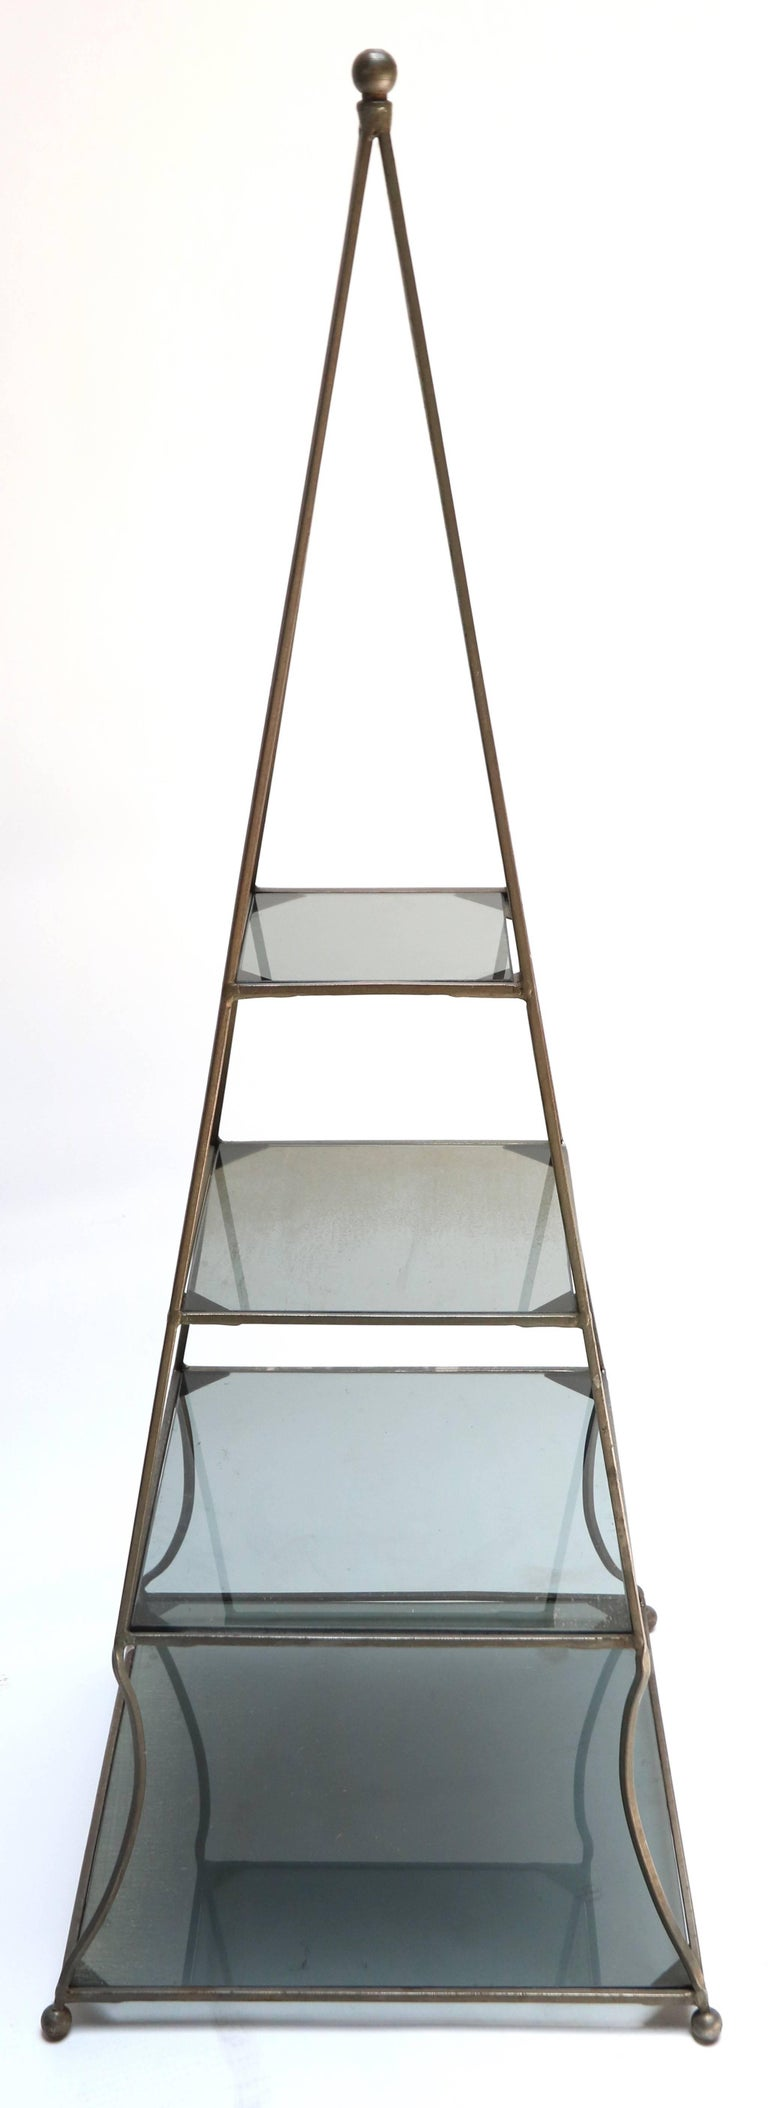 pair of 1960s metal pyramid tag res with smoked glass shelves for sale at 1stdibs. Black Bedroom Furniture Sets. Home Design Ideas